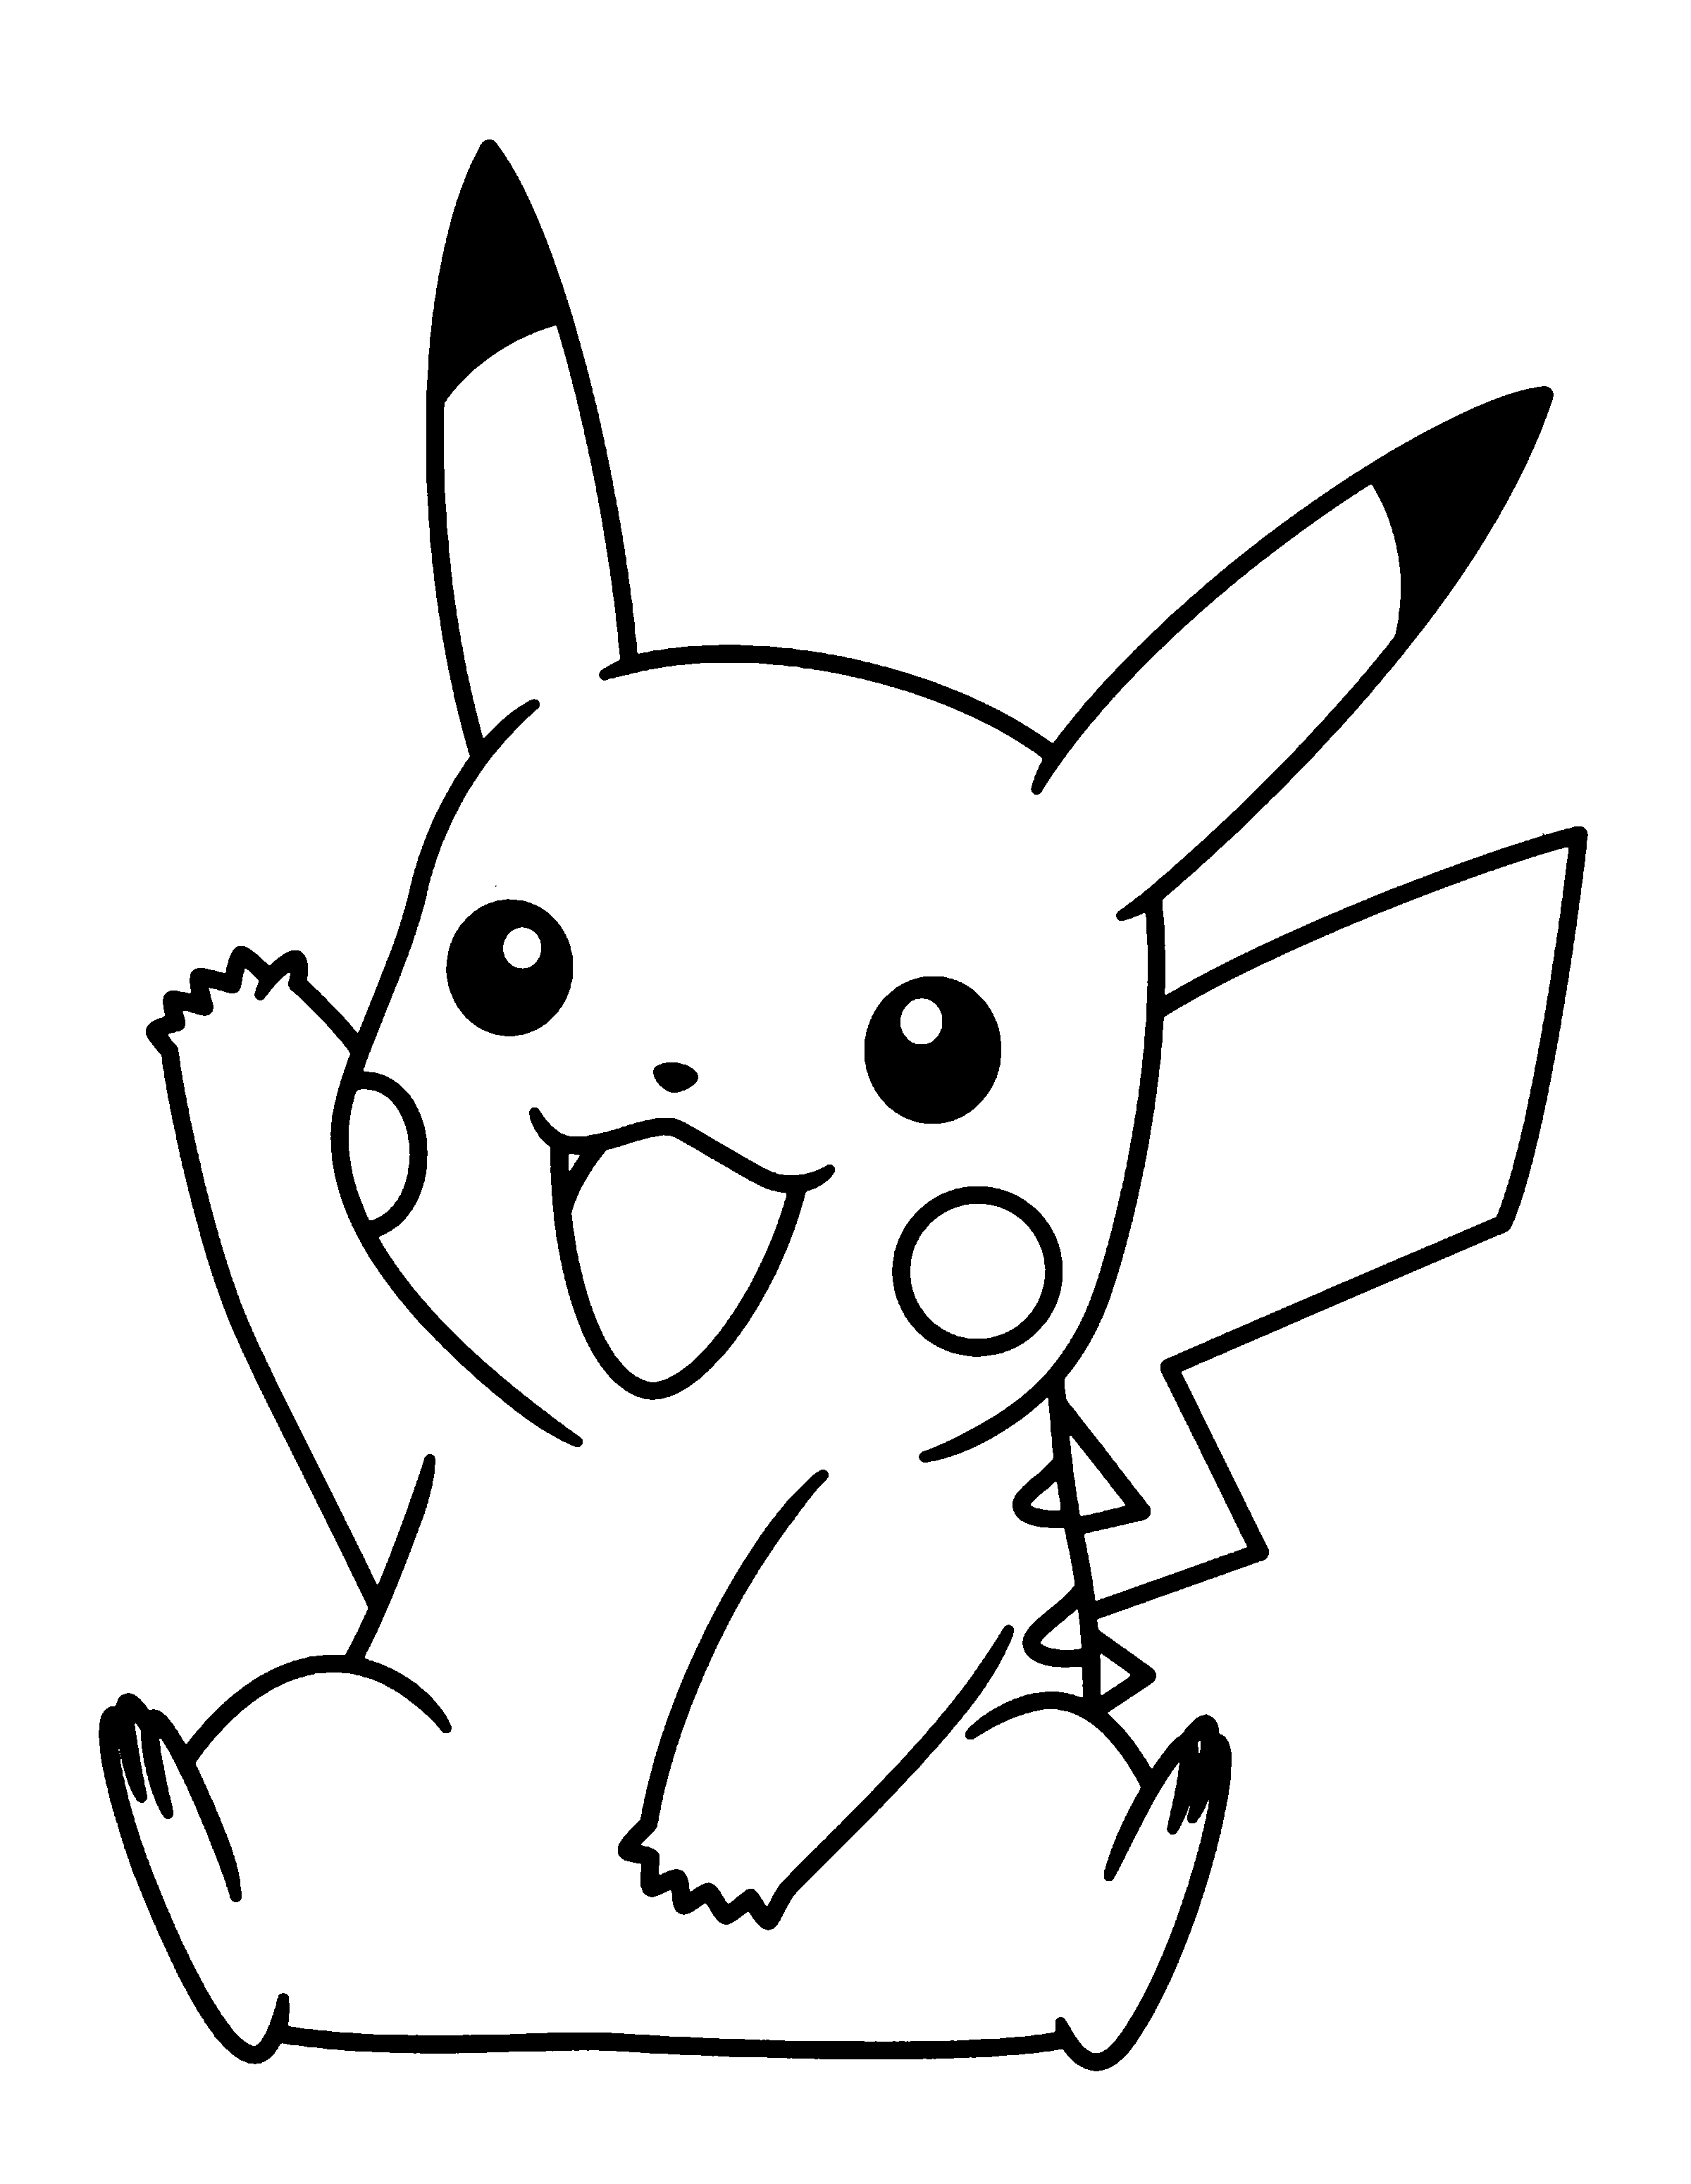 Pikachu clipart. Awesome collection digital coloring